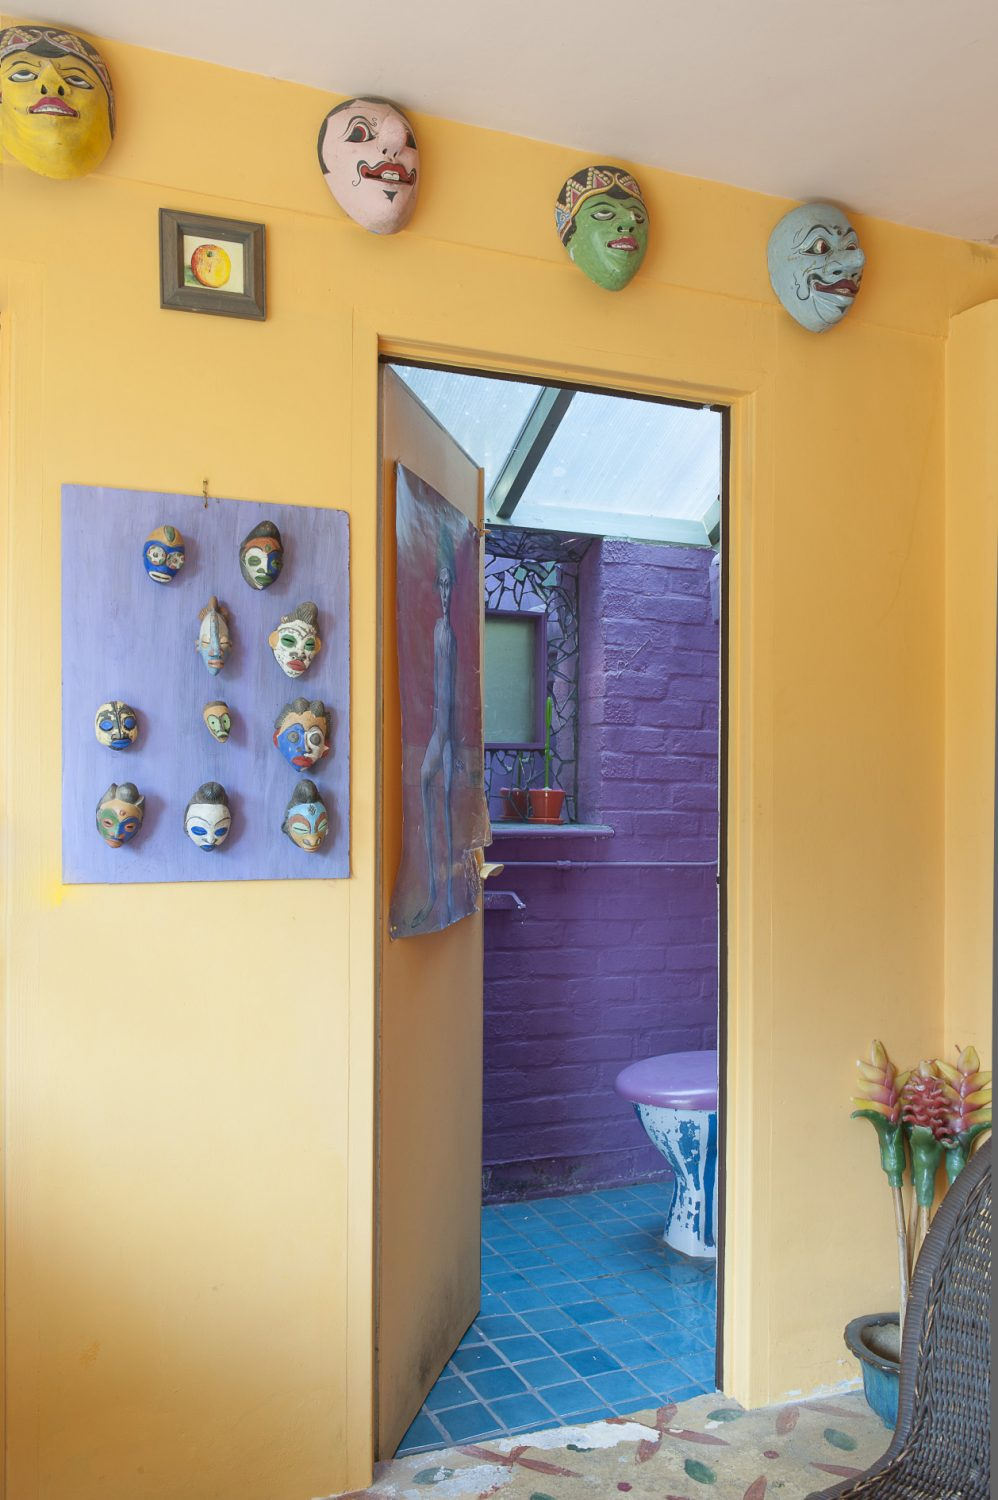 Behind a door in the vibrant garden room is the downstairs loo, painted a stunning purple and featuring a mosaic mirror. The orange walls are decorated with masks from Bali and South Africa